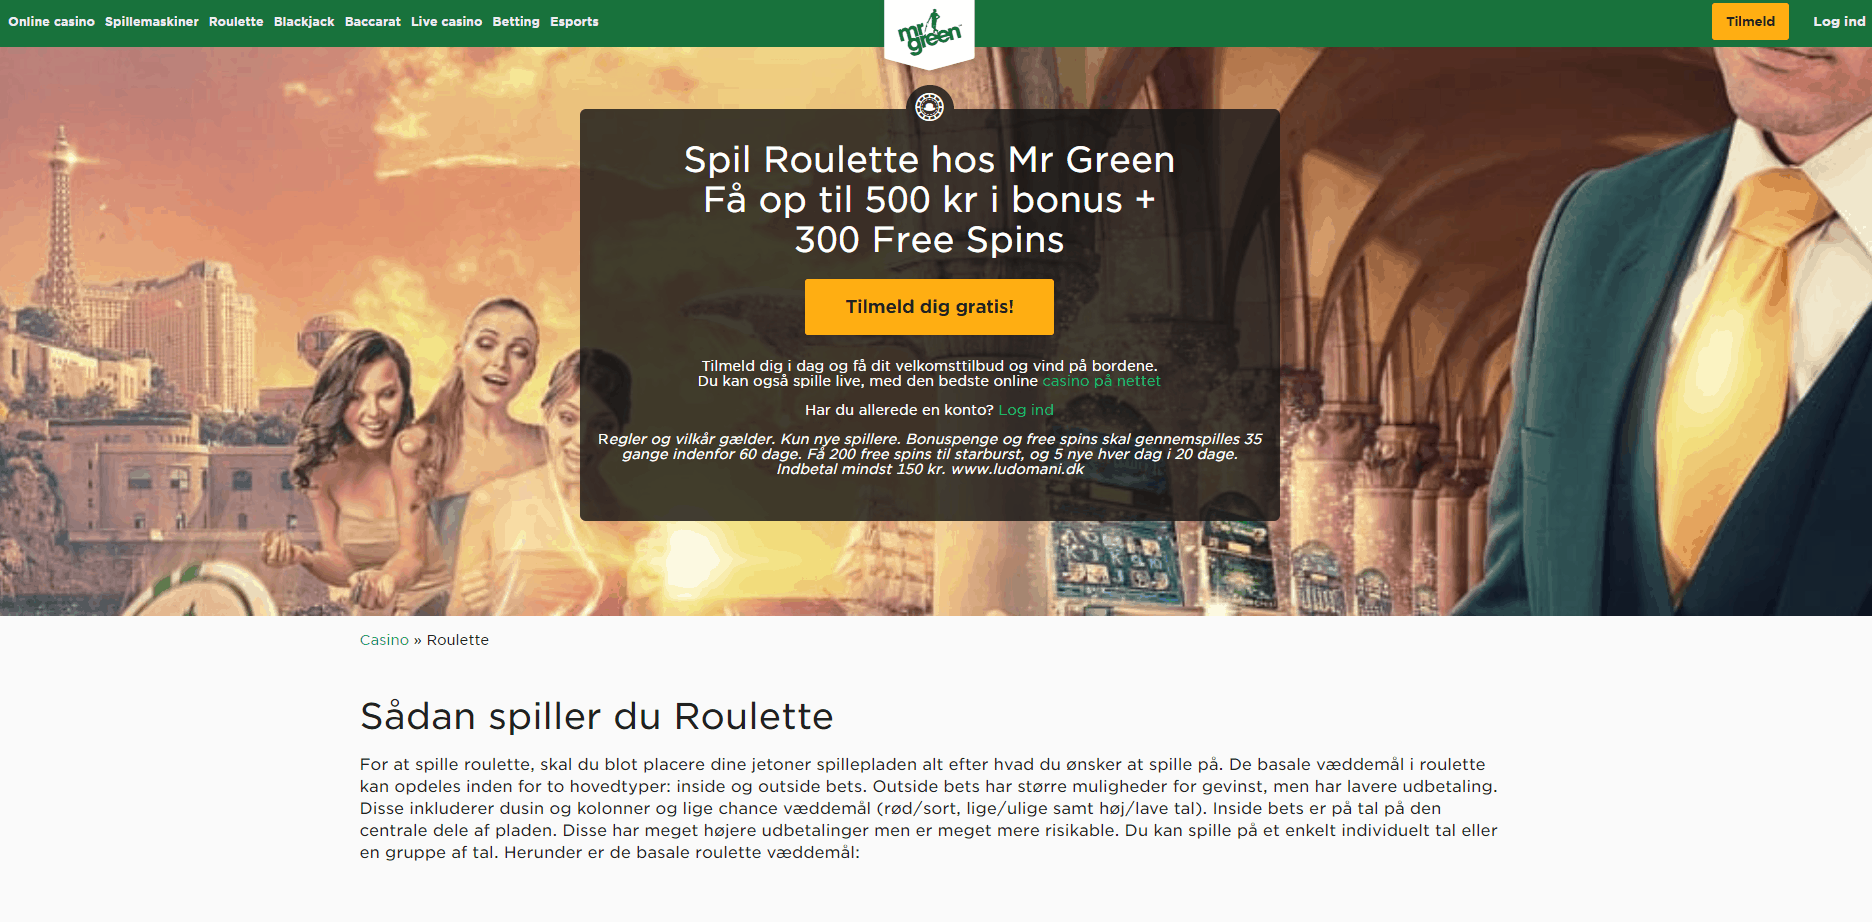 Mr Green Casino Roulette